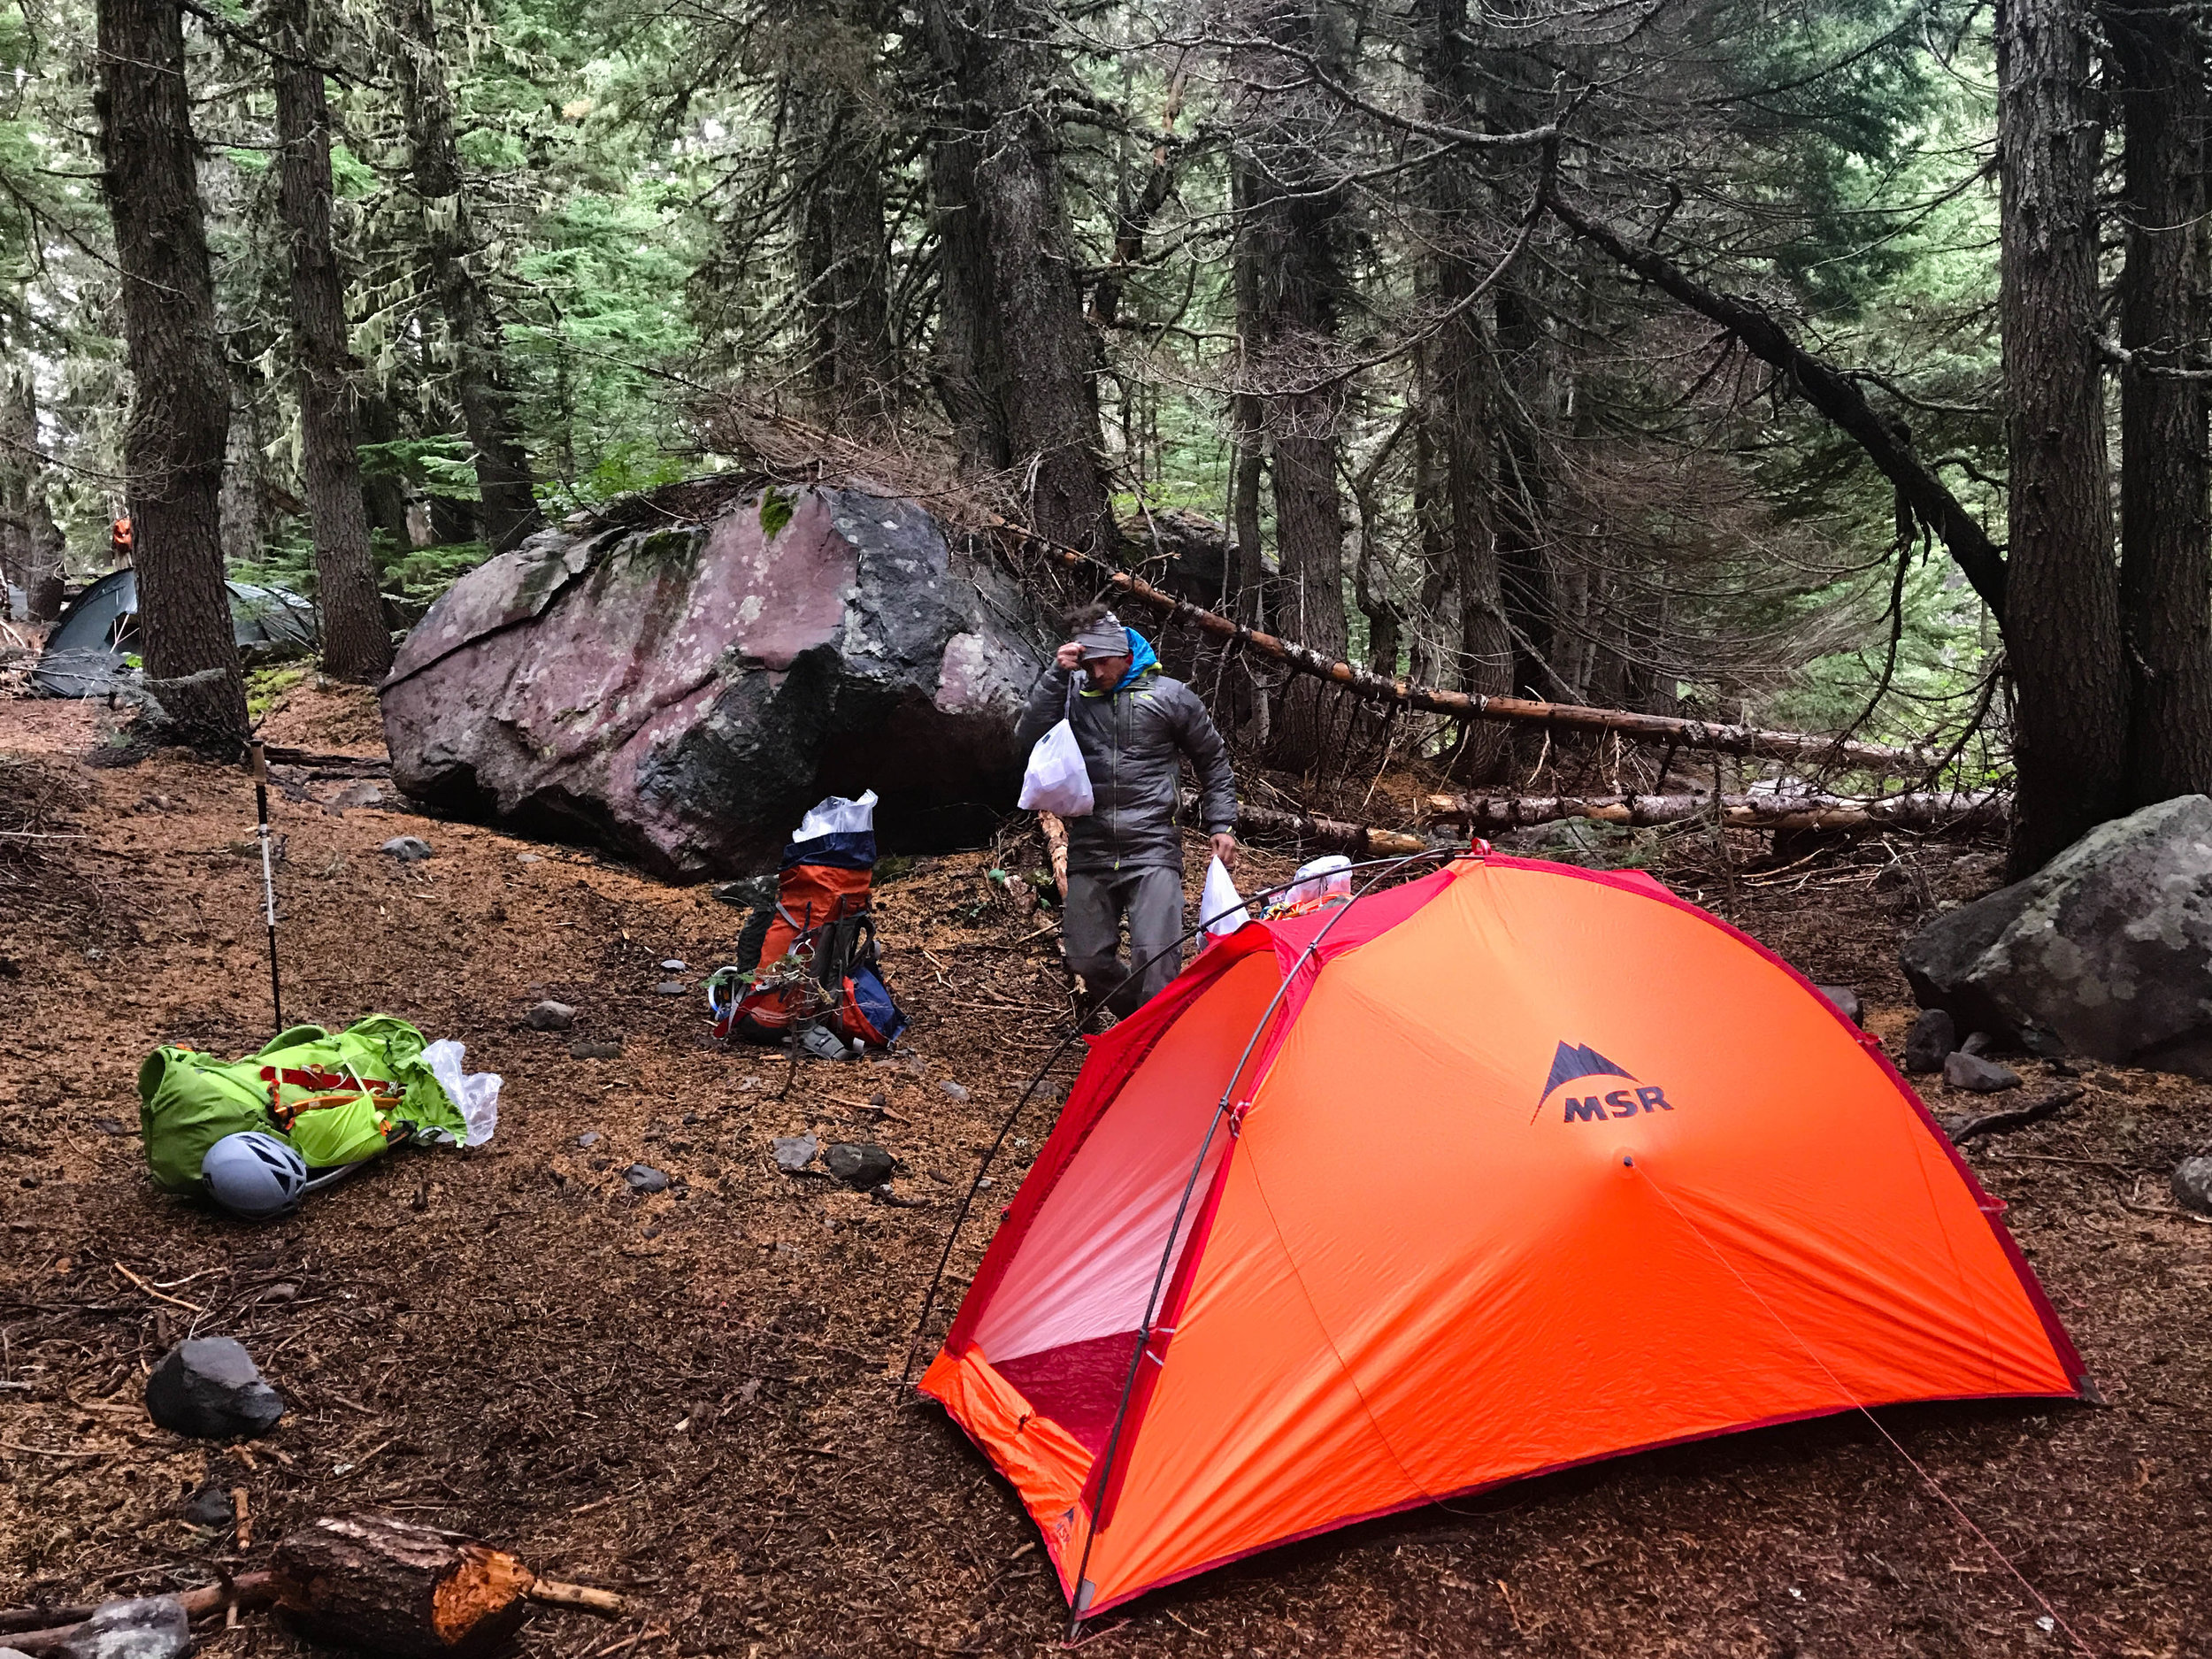 Mirkwood Camp- Camp 1 was at treeline just under the toe of the Coleman Glacier at 4600 feet. Recent rains soaked everything, requiring trenching around tents to keep them from flooding.